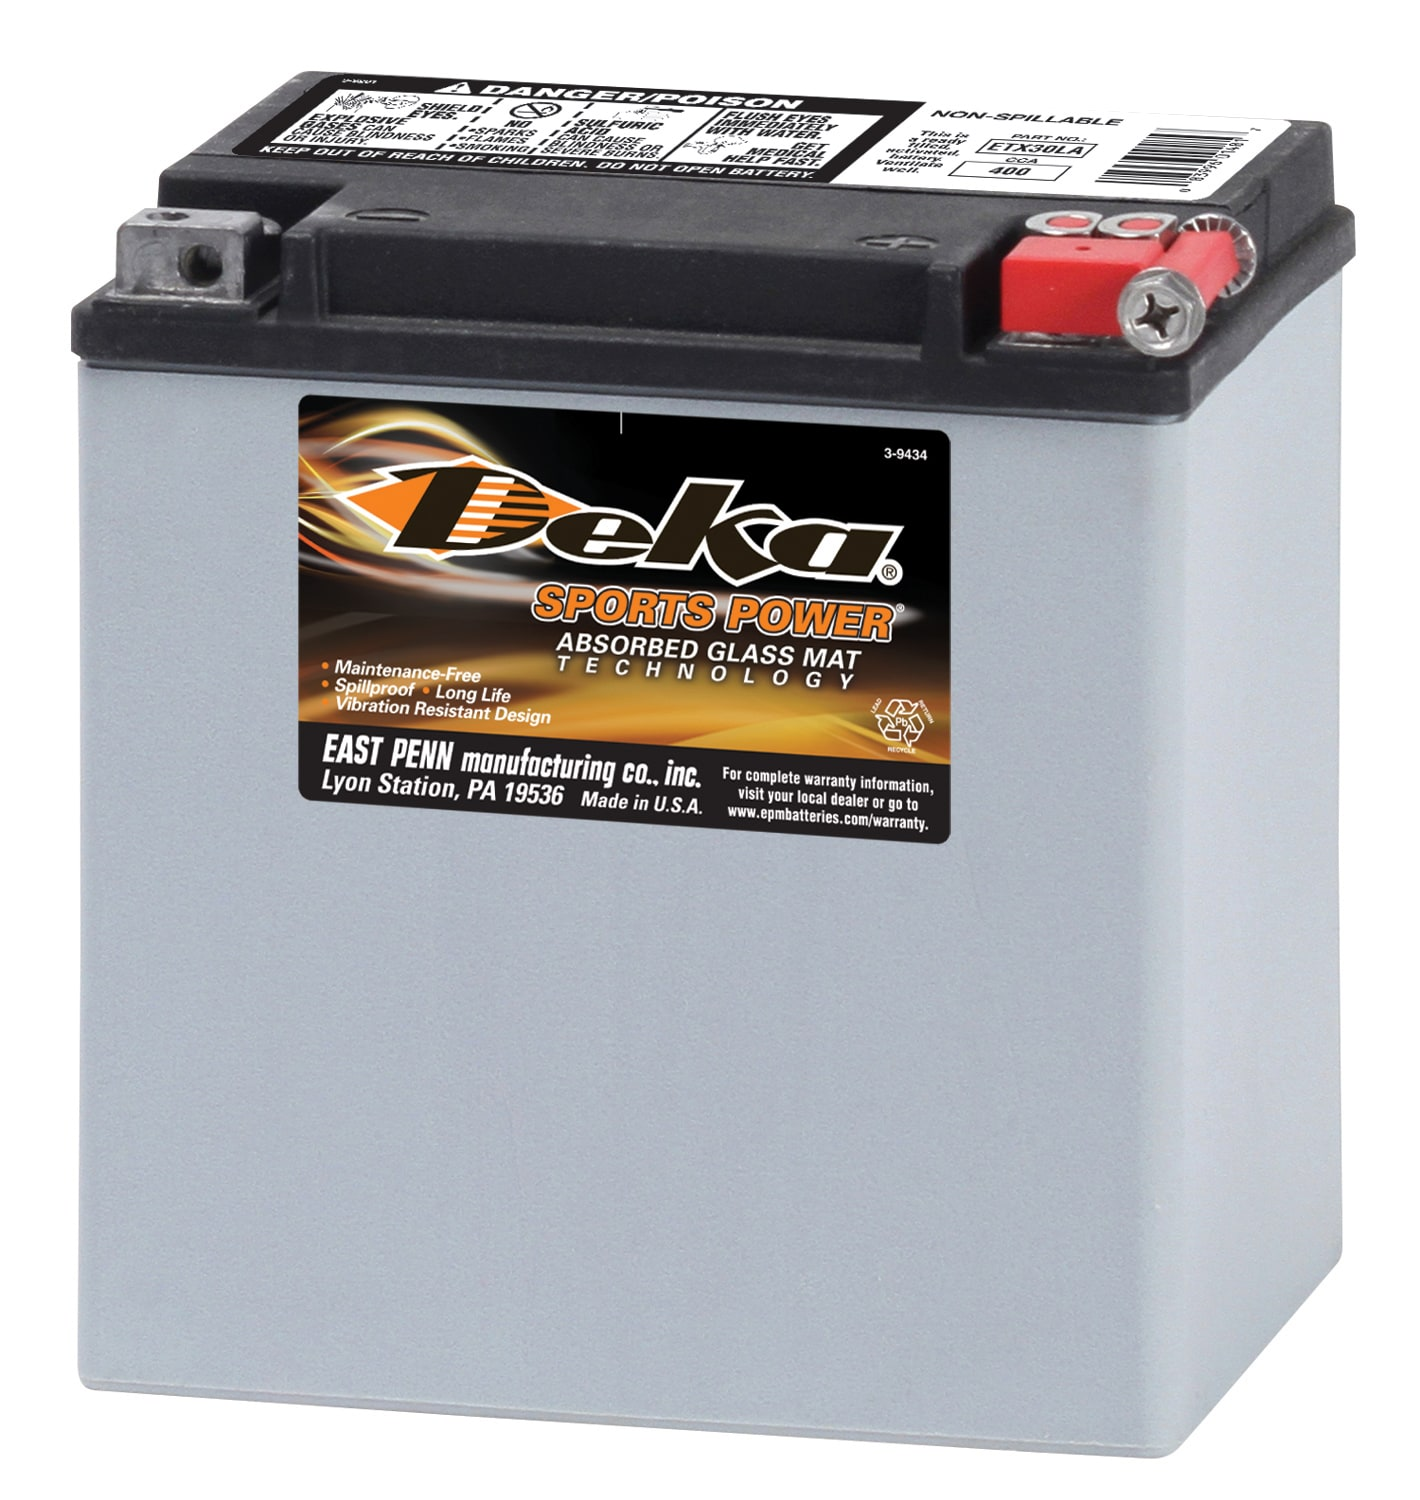 Deka 12 Volt Motorcycle Battery In The Power Equipment Batteries Department At Lowes Com